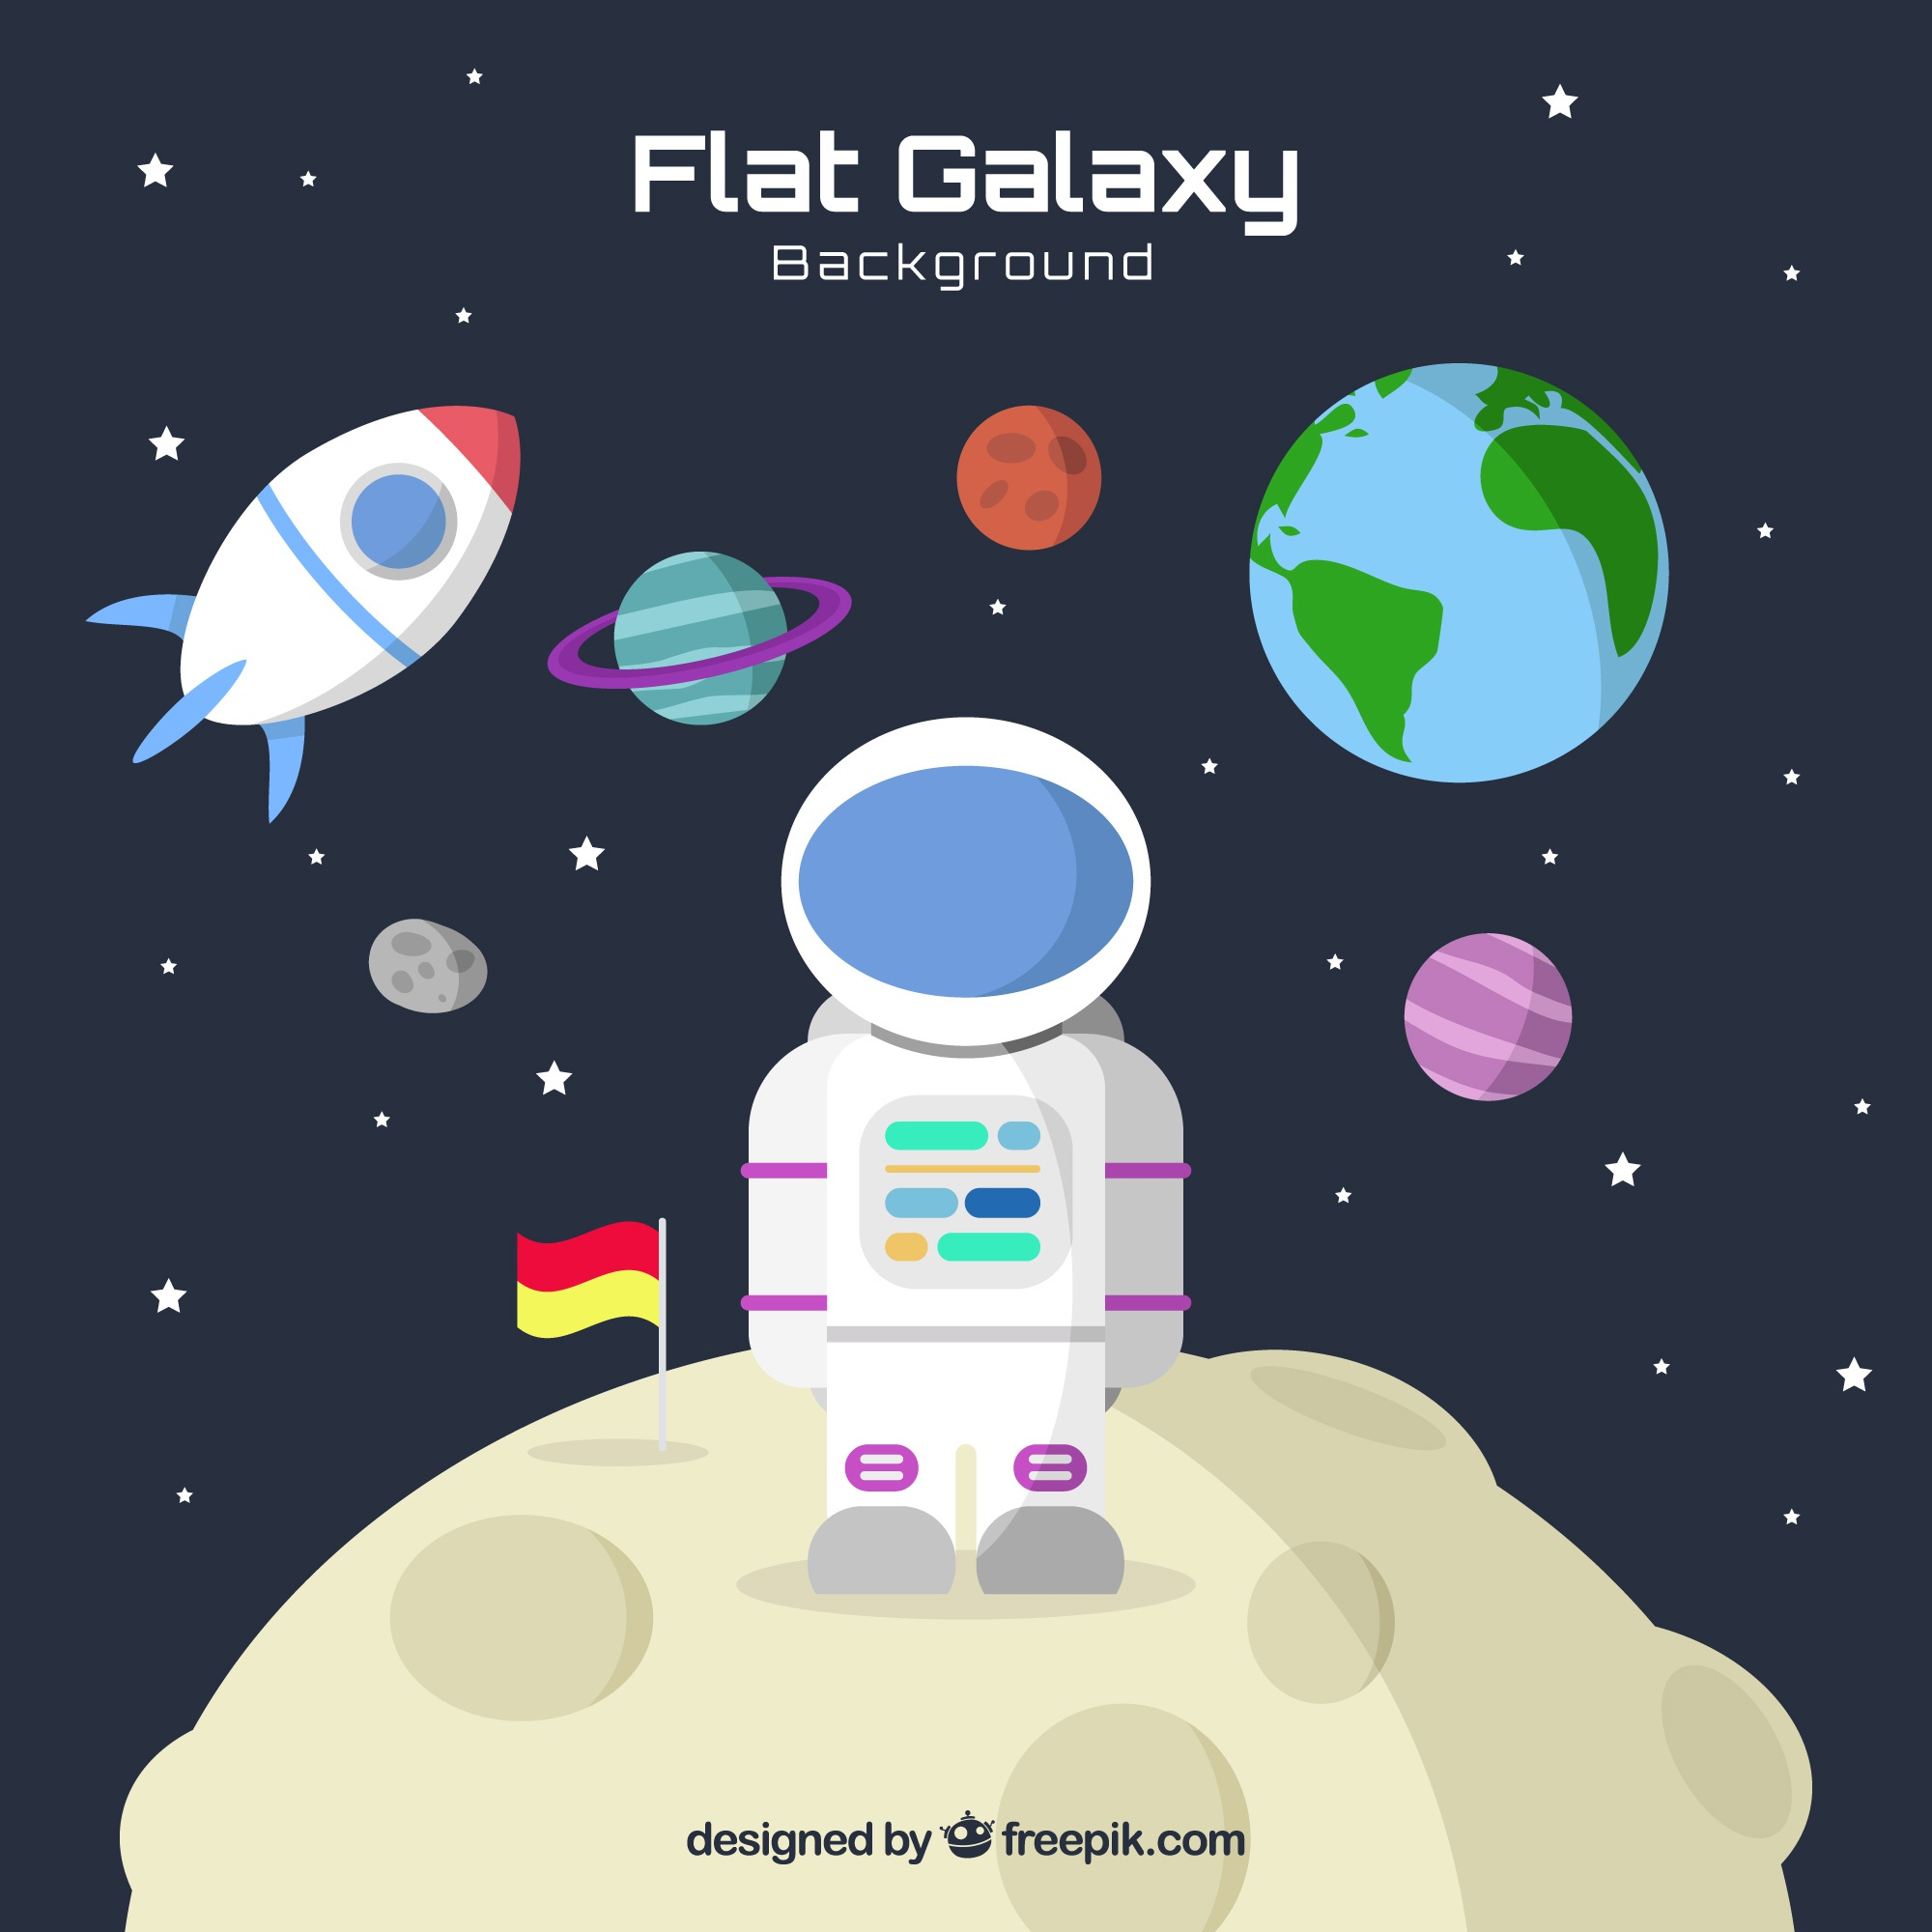 Flat galaxy background with astronaut